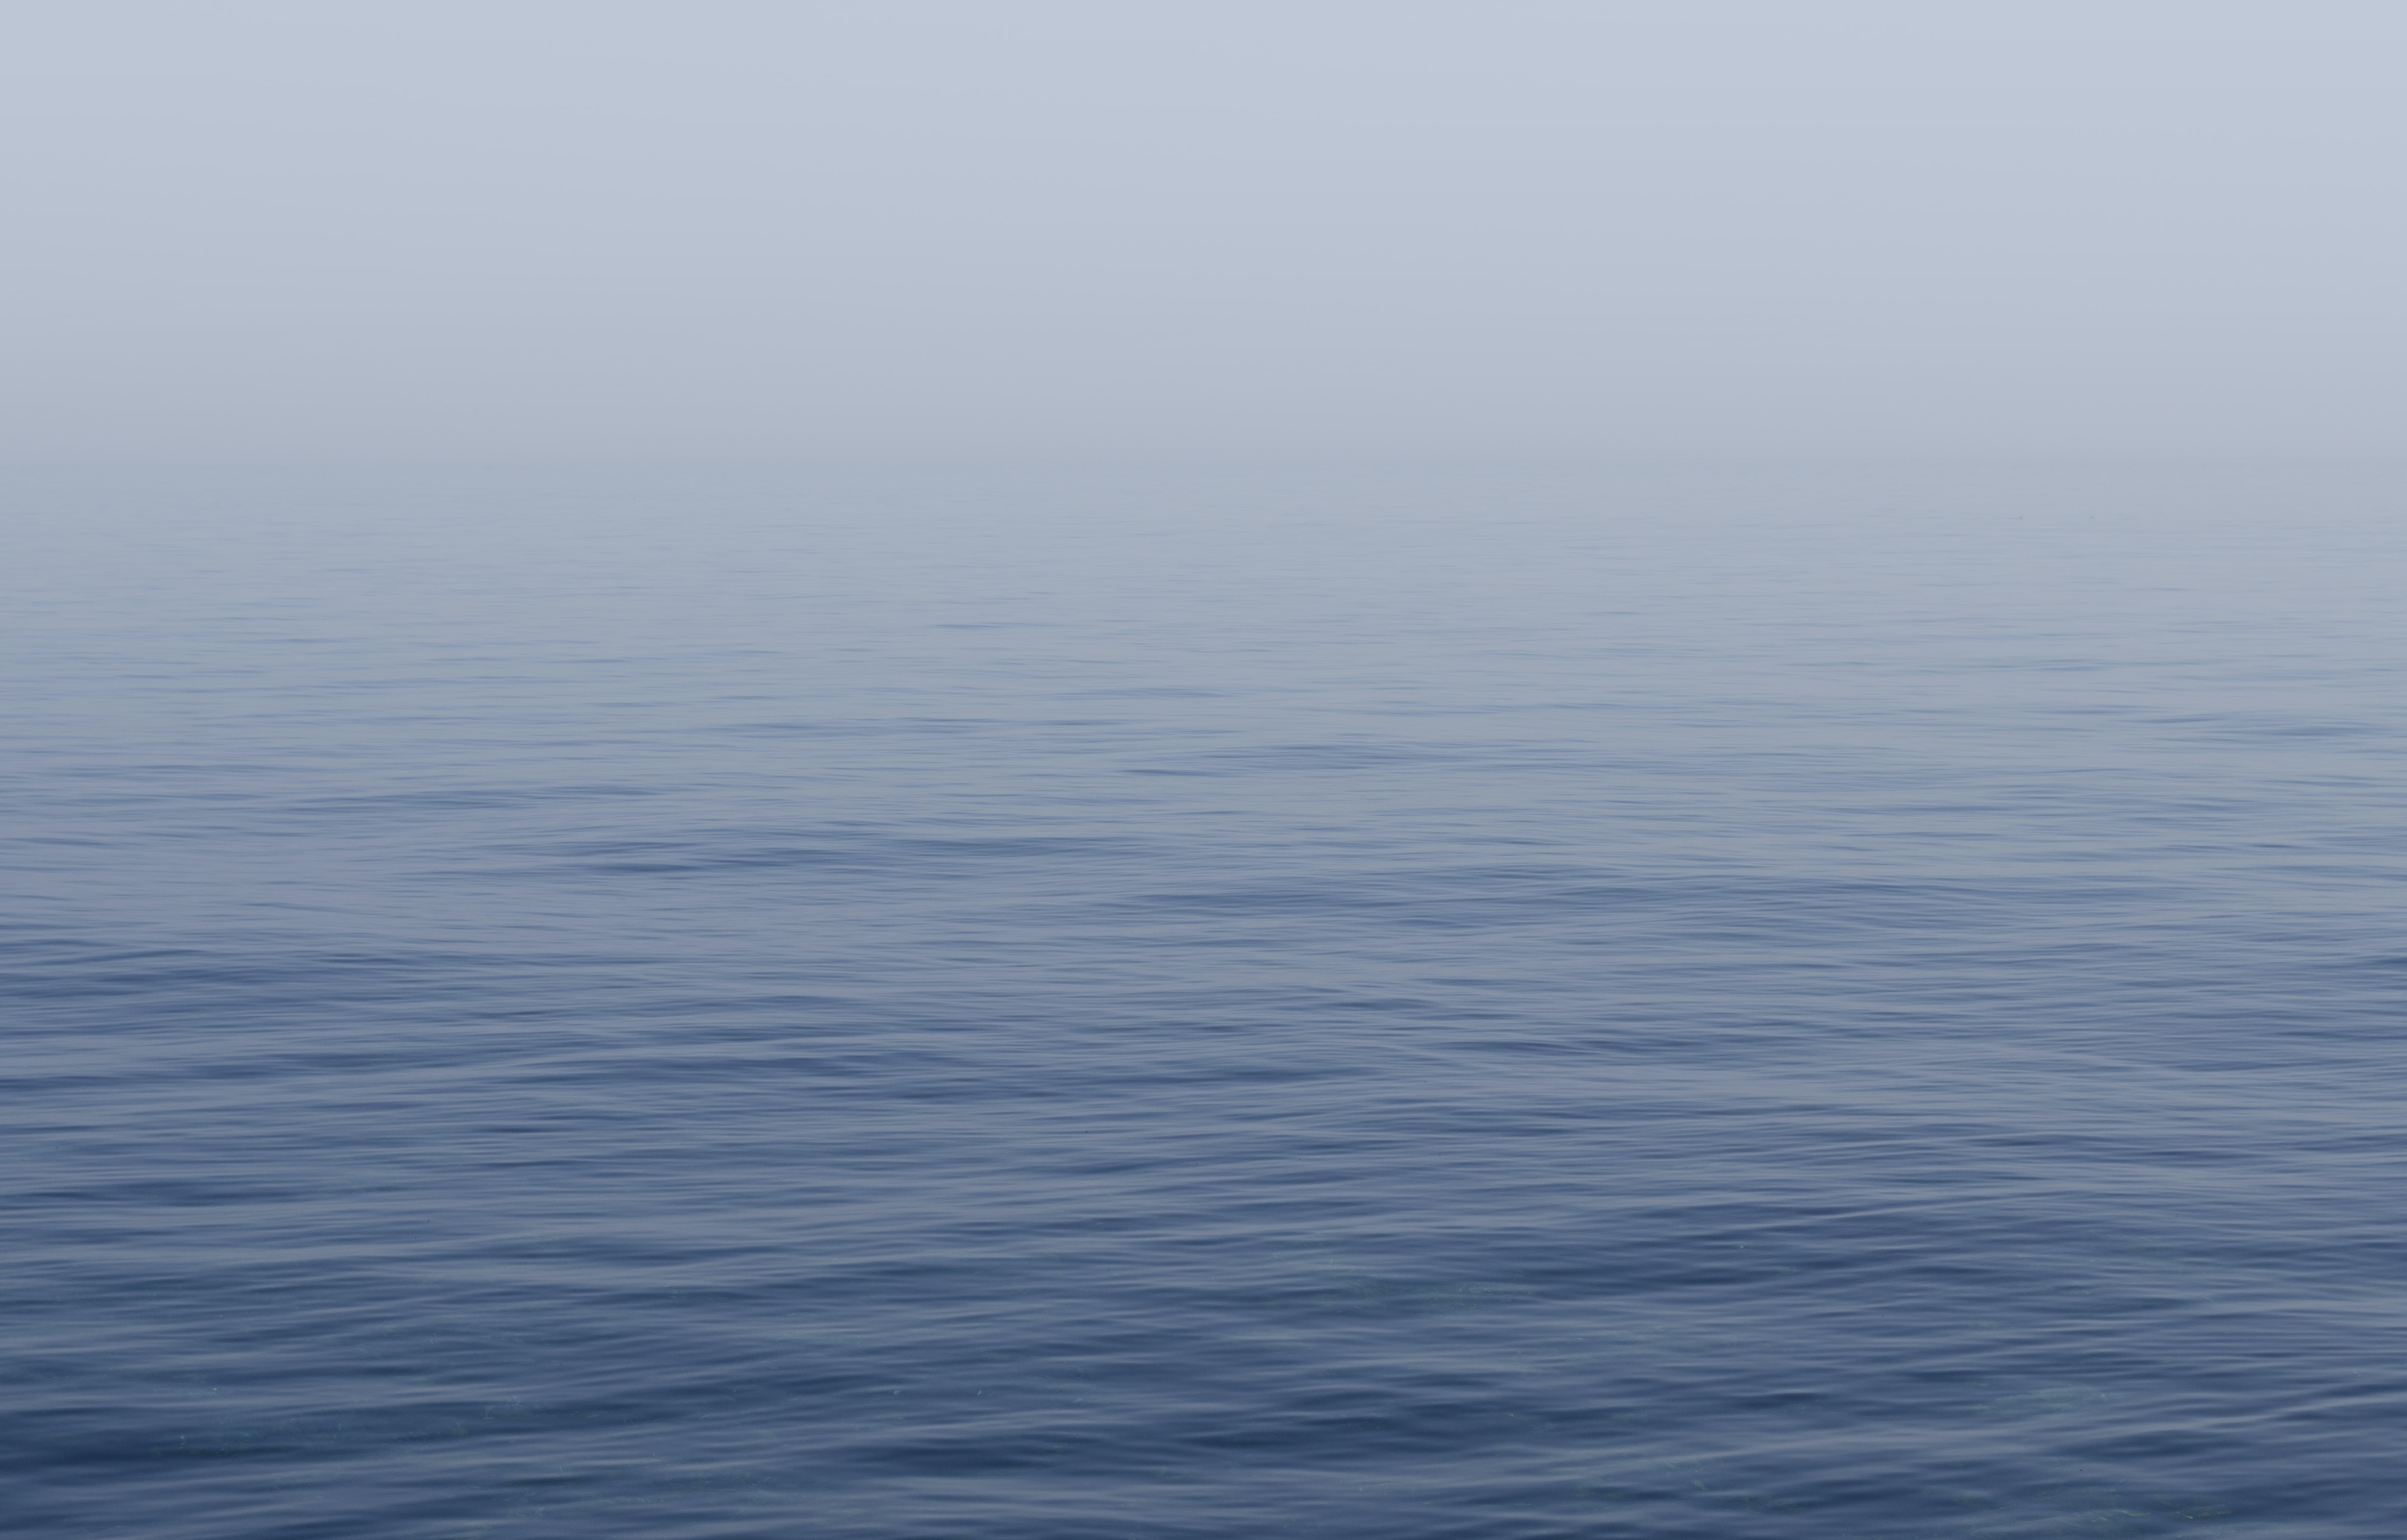 Calm, blue sea covered in a soft mist